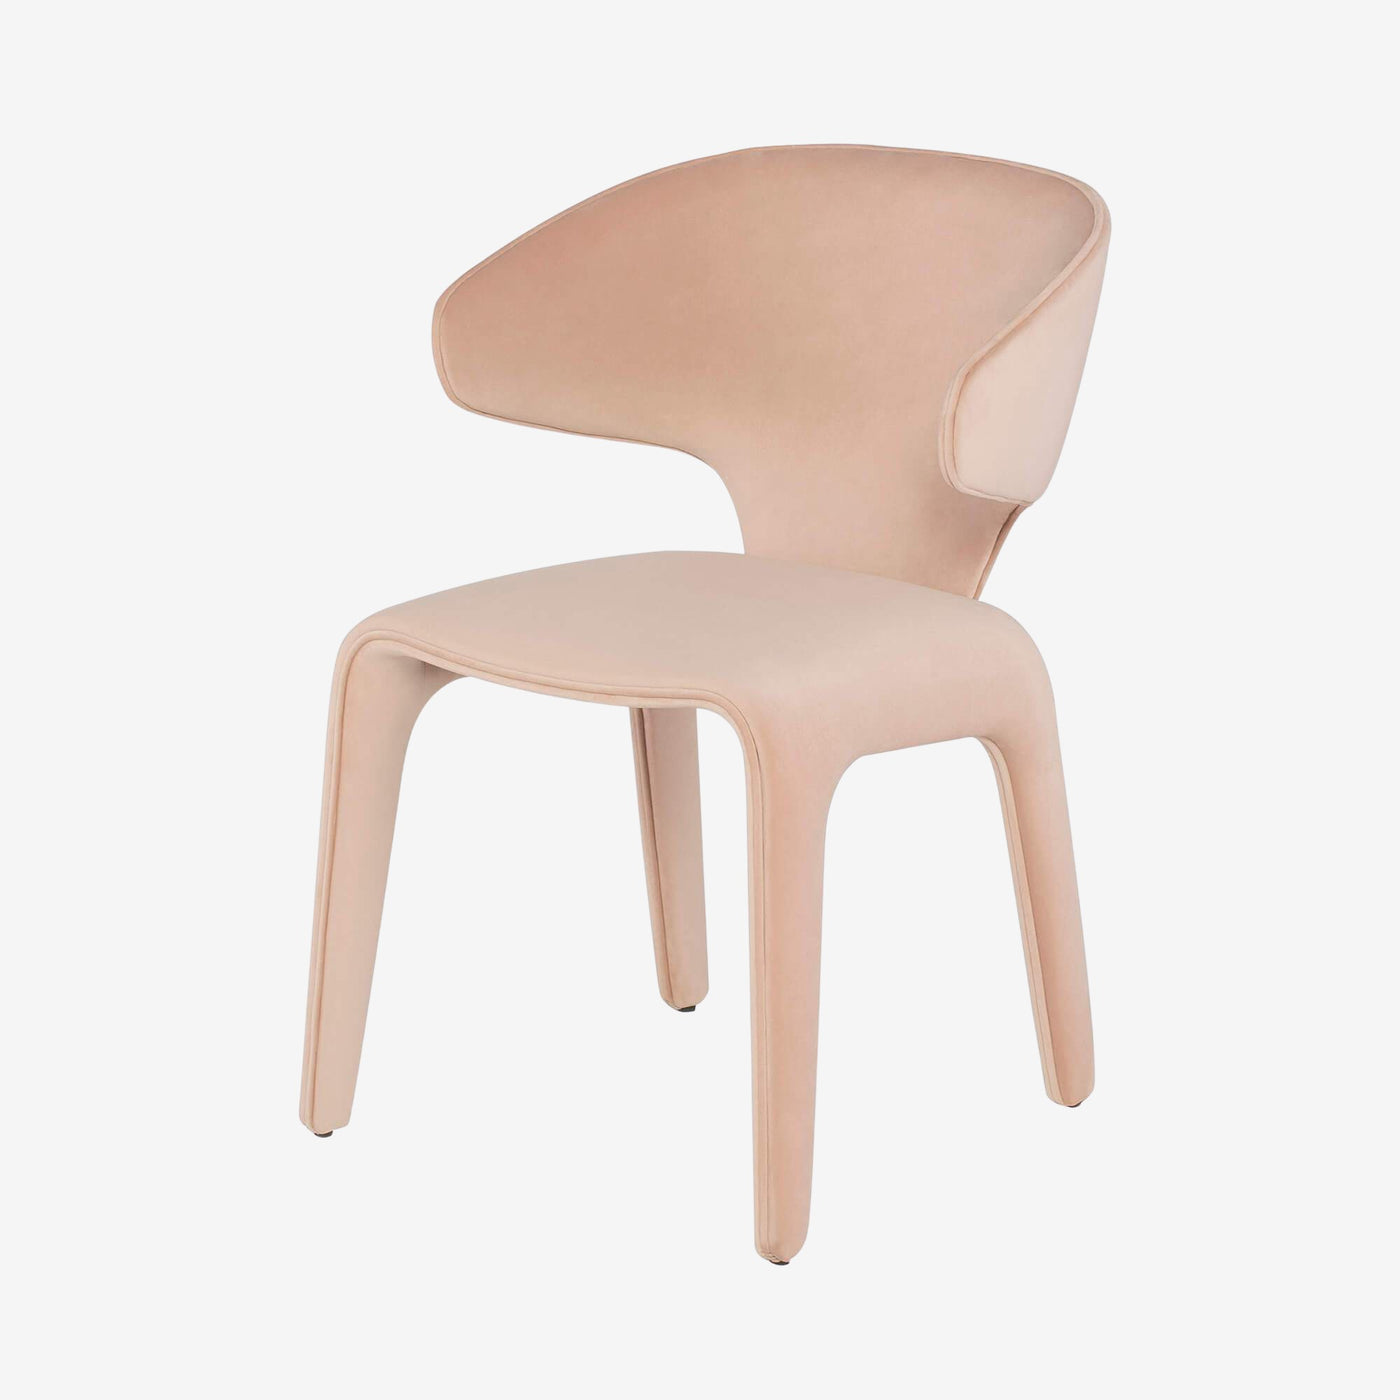 Give A Hug Dining Chair